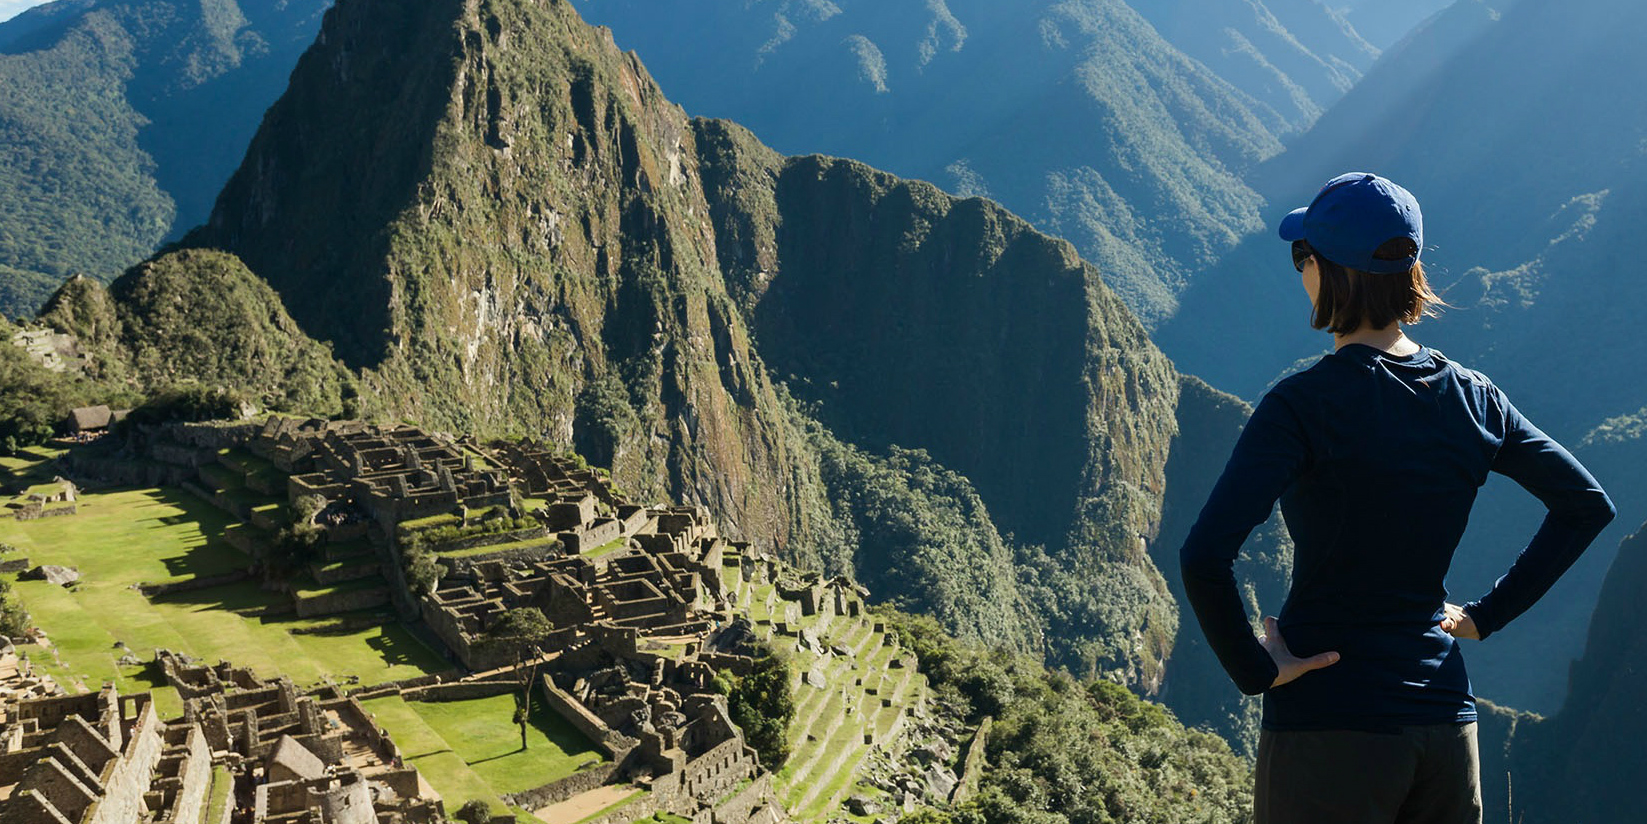 A GVI participant enjoys the view of Machu Picchu while taking a gap year.